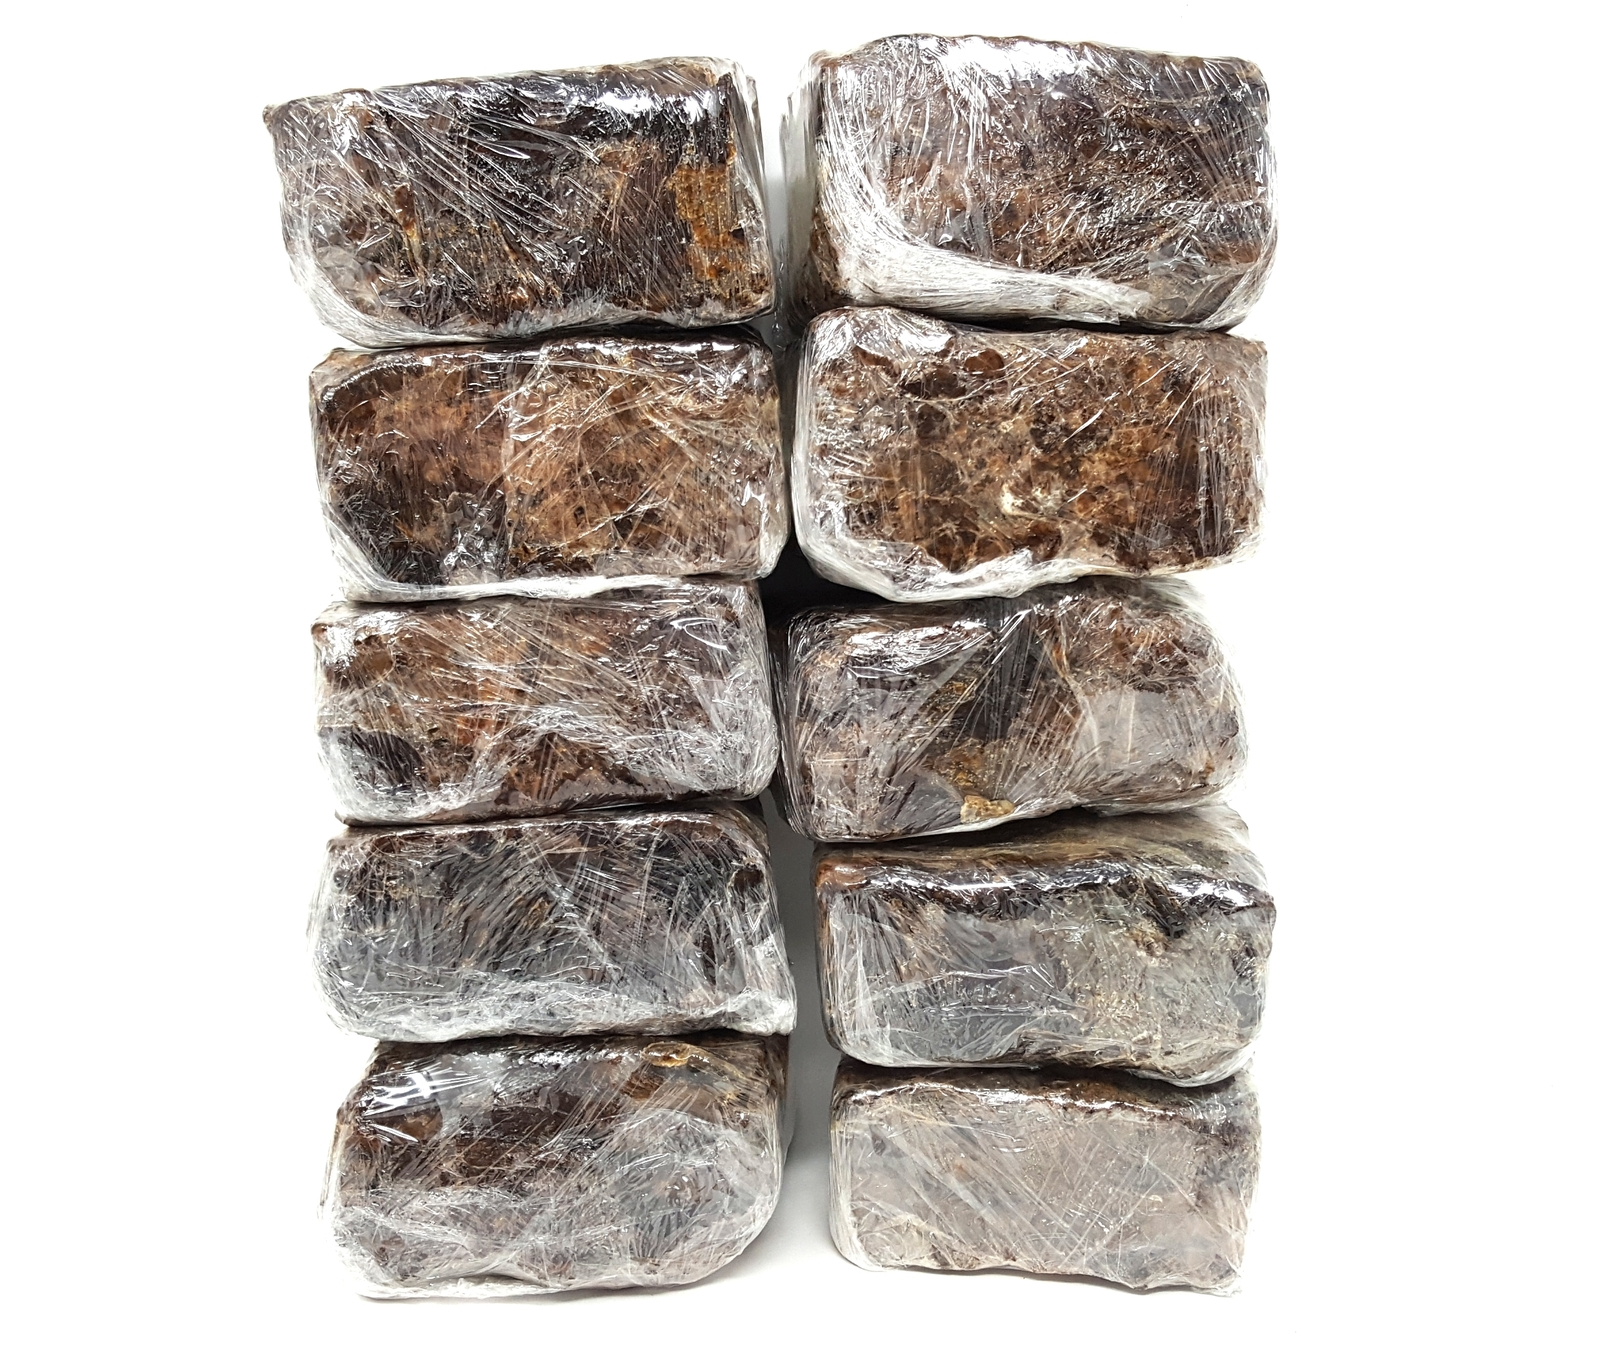 Primary image for 10 lb RAW ORGANIC AFRICAN BLACK SOAP Pure 100% All Natural Africa Bulk Wholesale